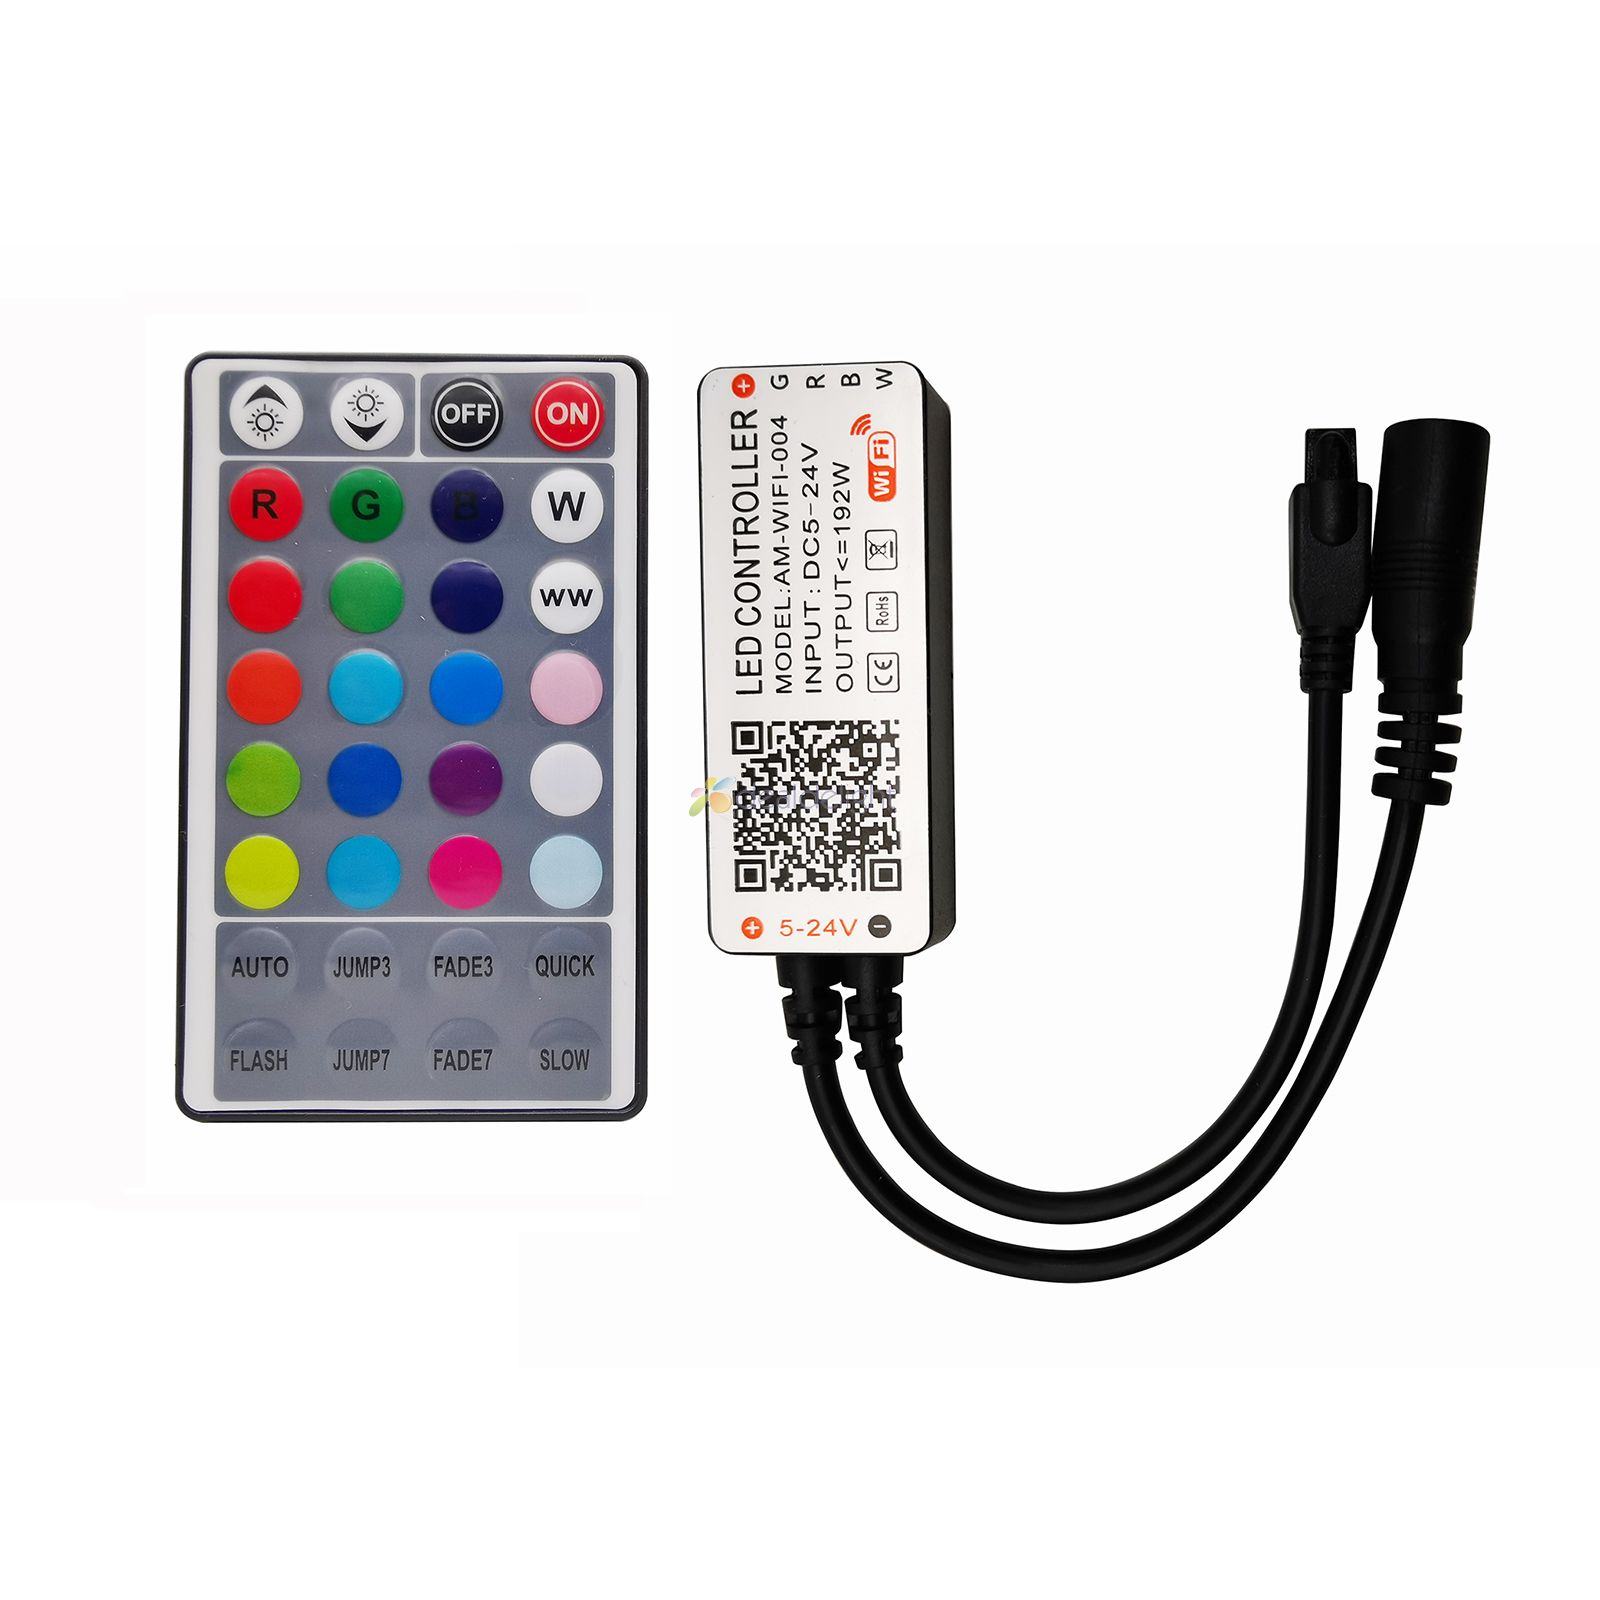 Tuya WiFi Intelligent LED Controller 4-Way RGBW Lamp Strip Controller DC 5-24V With 28keys IR Remote Control MAX 192W